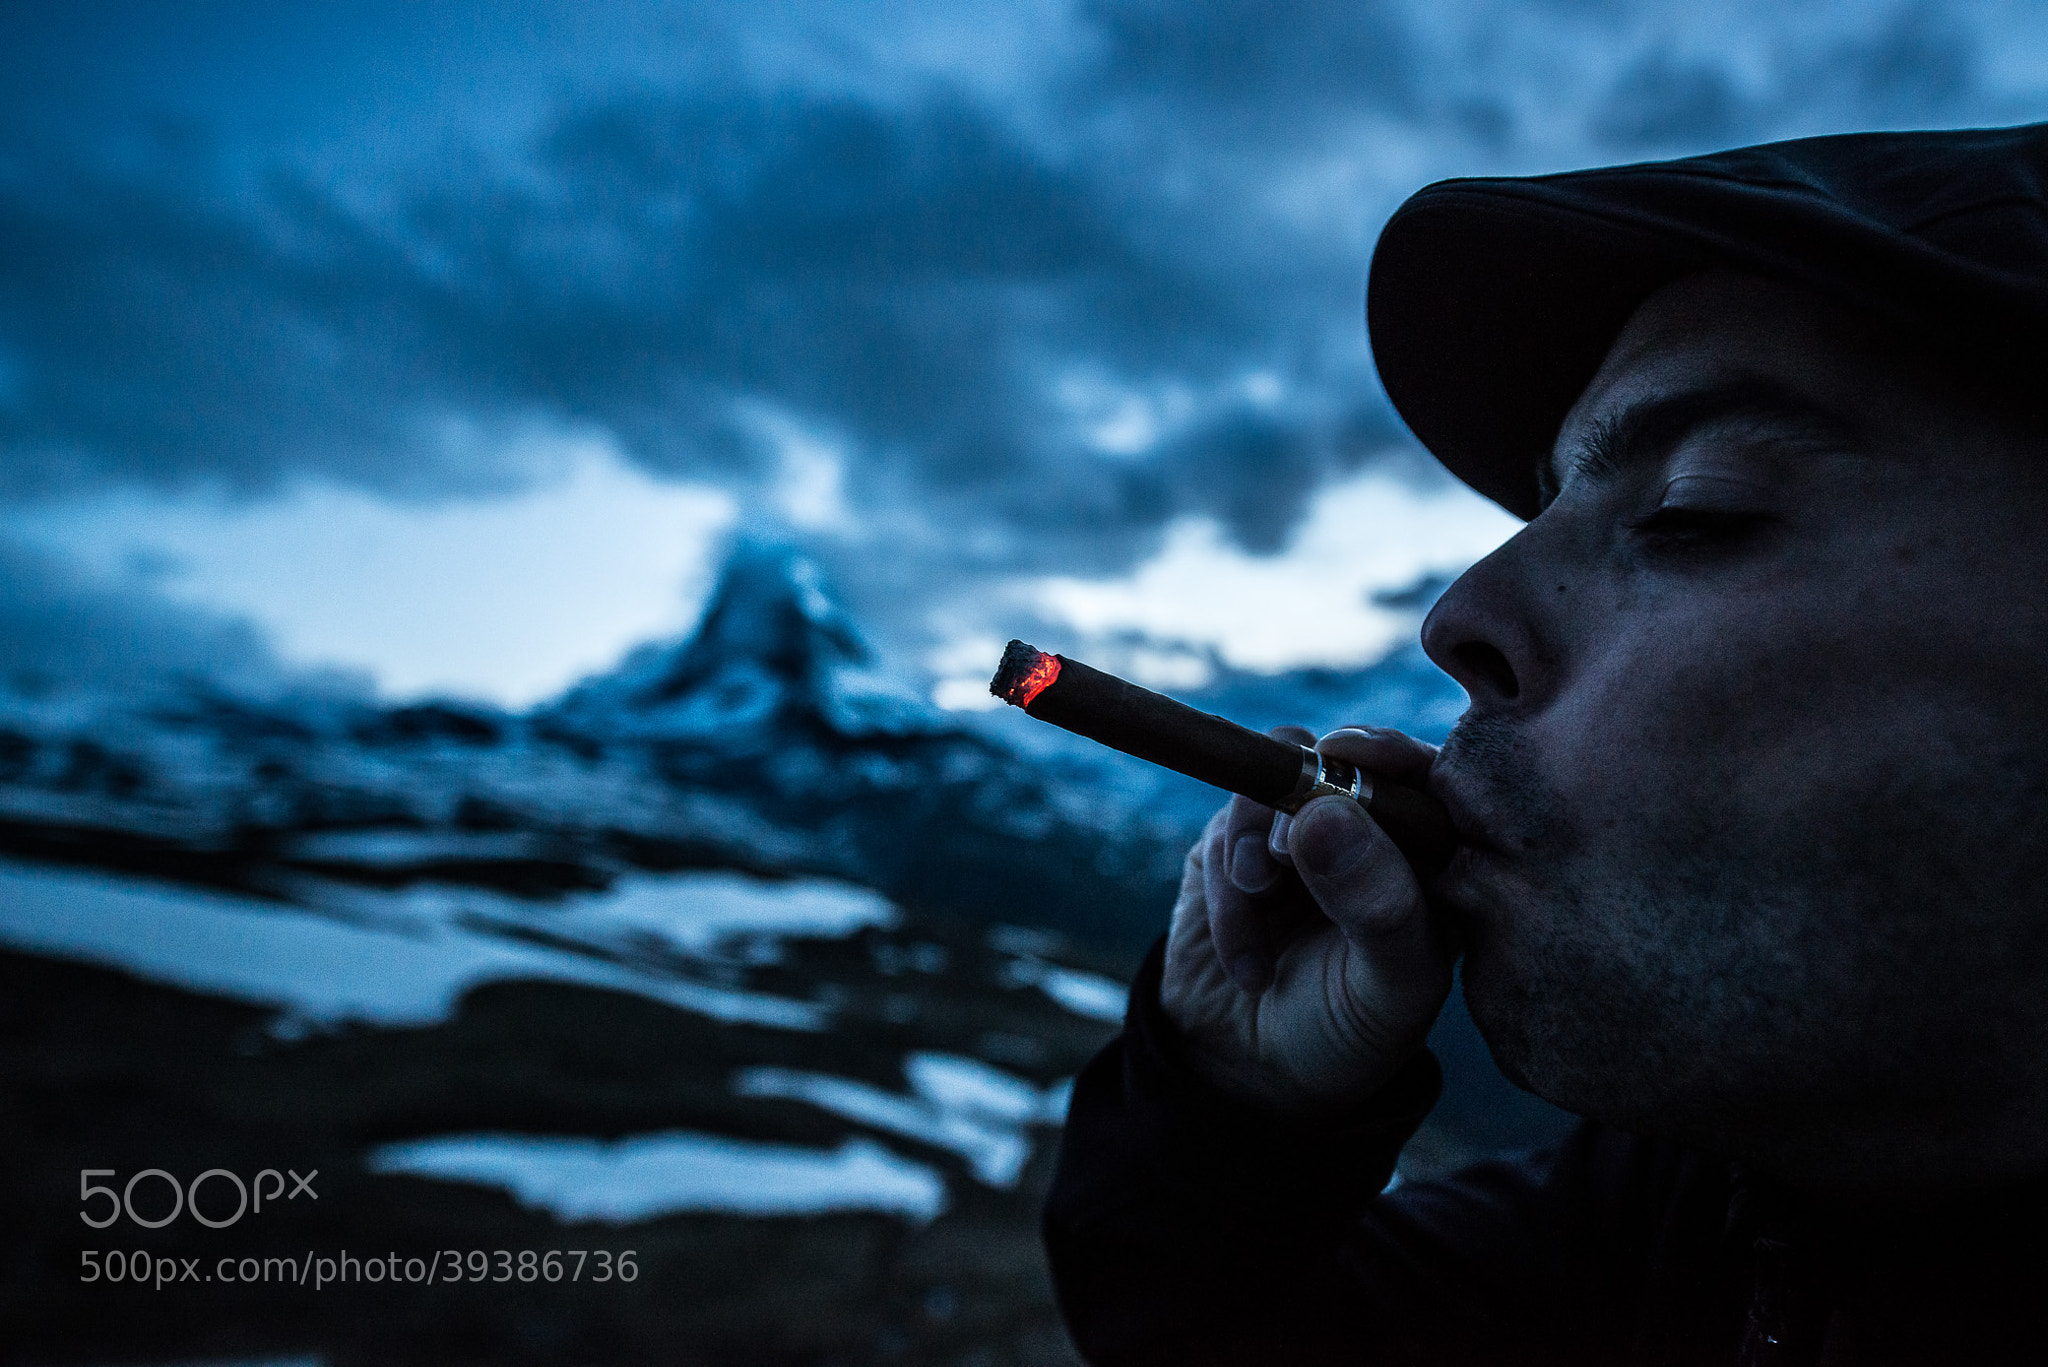 Photograph Smoking by Lycien Jantos on 500px